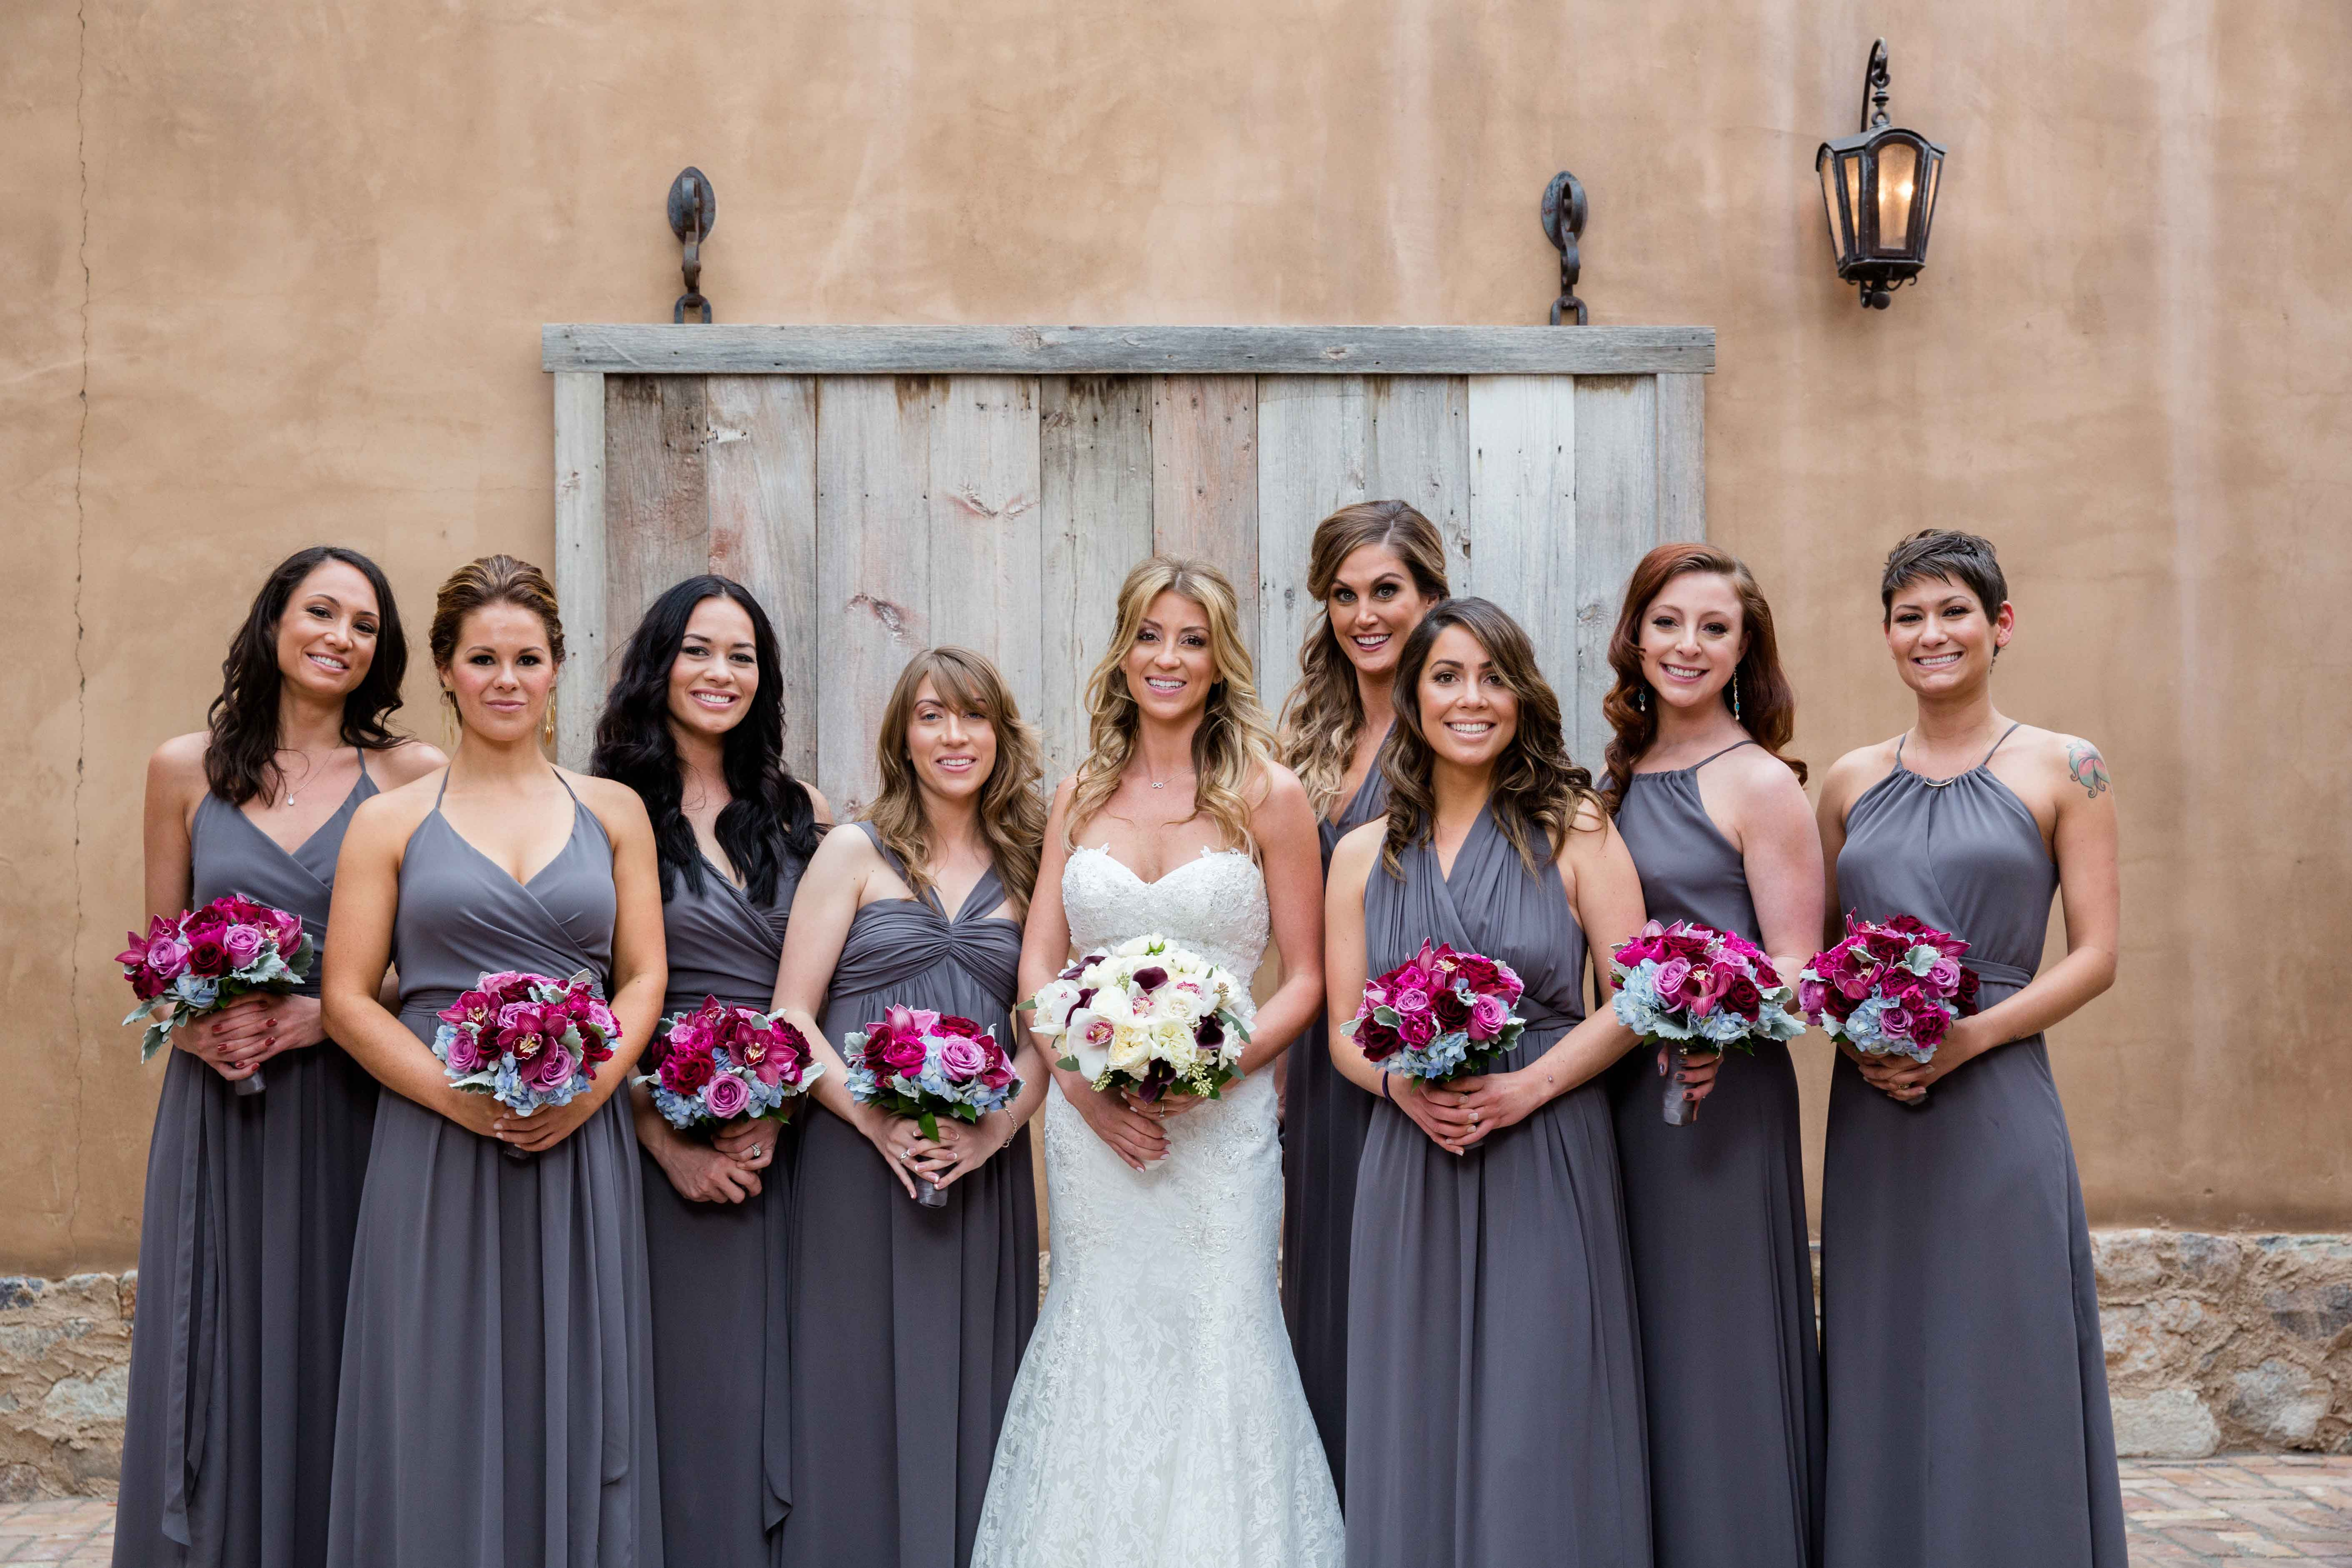 bridesmaids different dresses same color brock osweiler wife - Bridesmaid Dresses Same Color Different Style